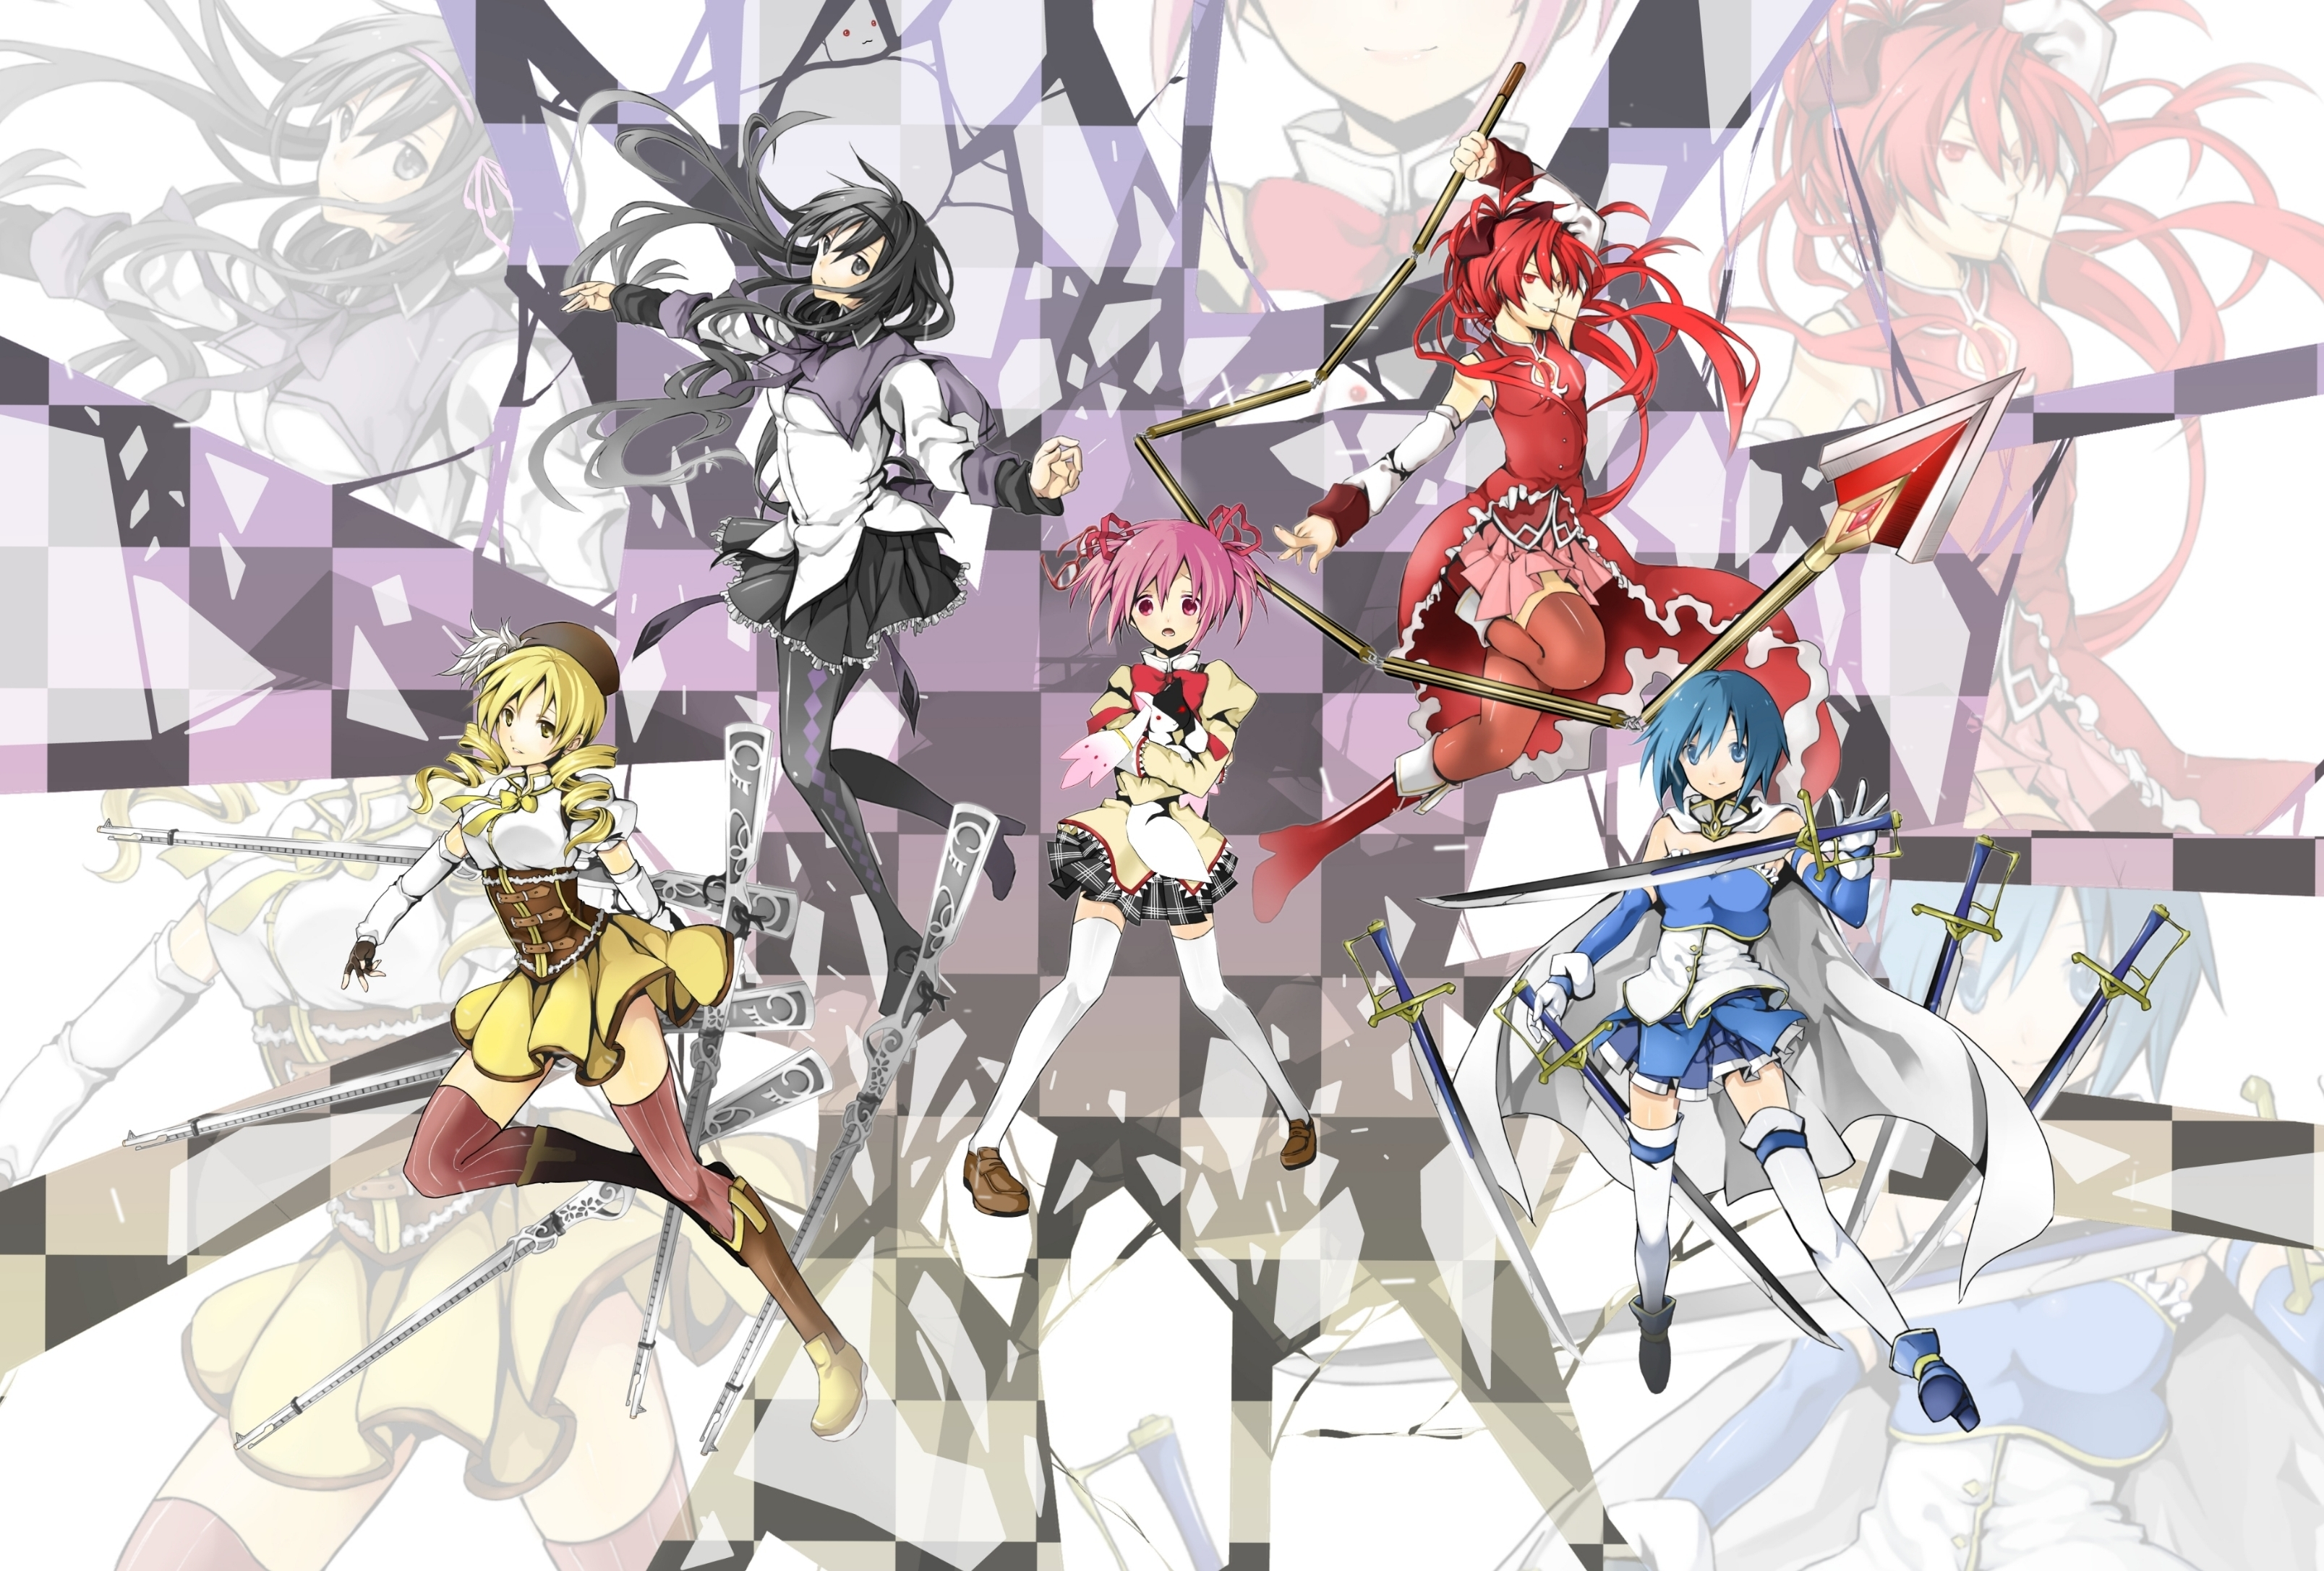 Download Wallpaper From Anime Puella Magi Madoka Magica With Tags